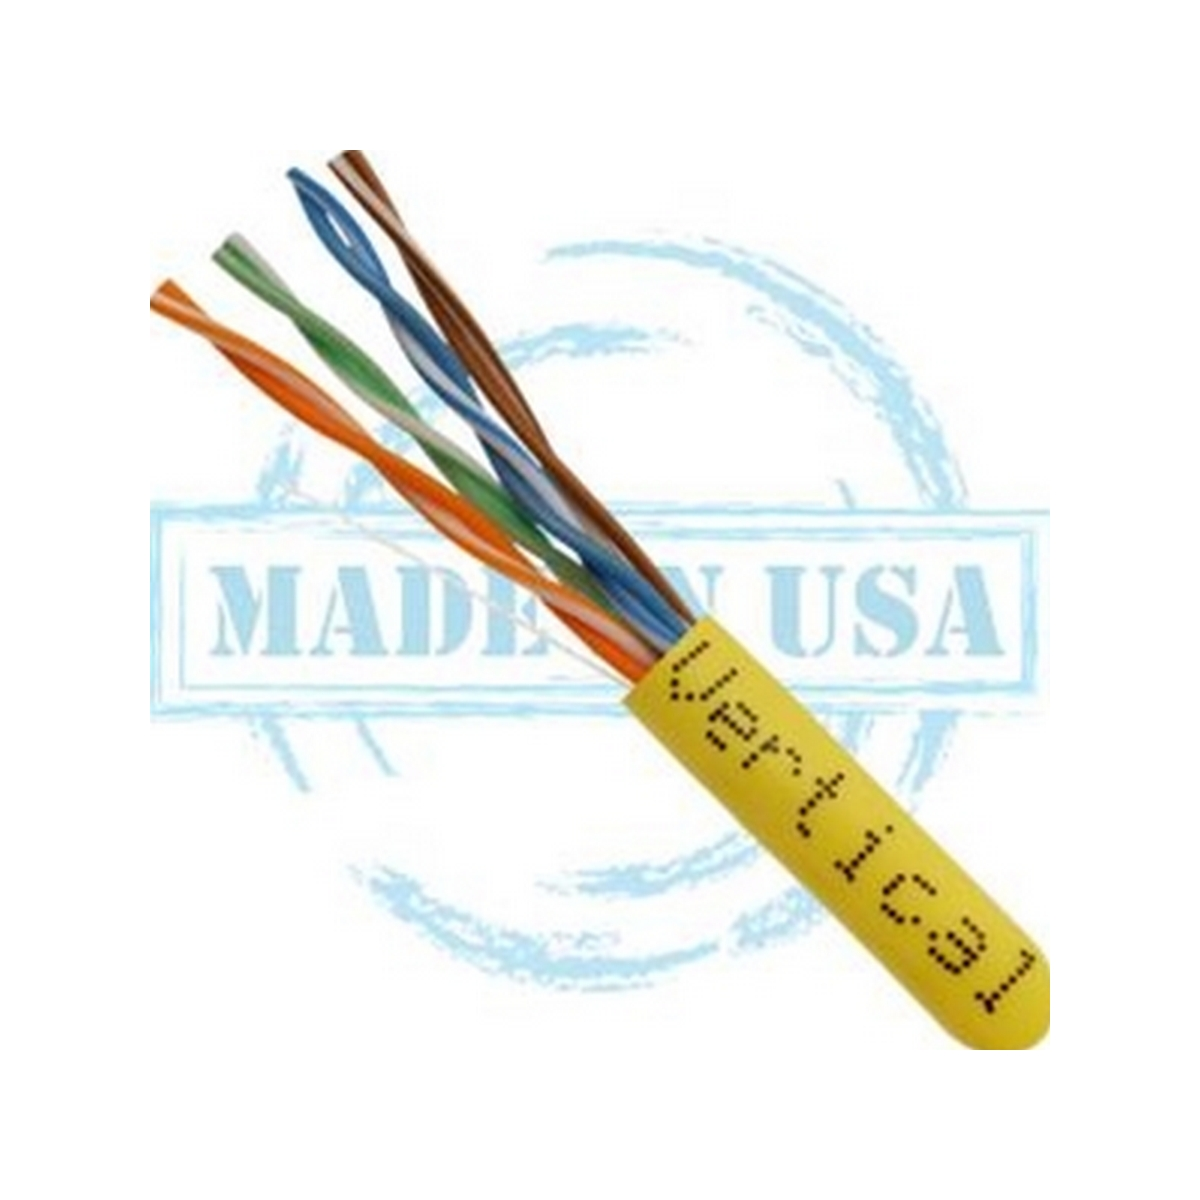 Vertical MADE IN USA, CAT5E, Plenum,  24AWG, UTP, 4 Pair, Solid Bare Copper, 350MHz, 1000ft Pull Box Yellow